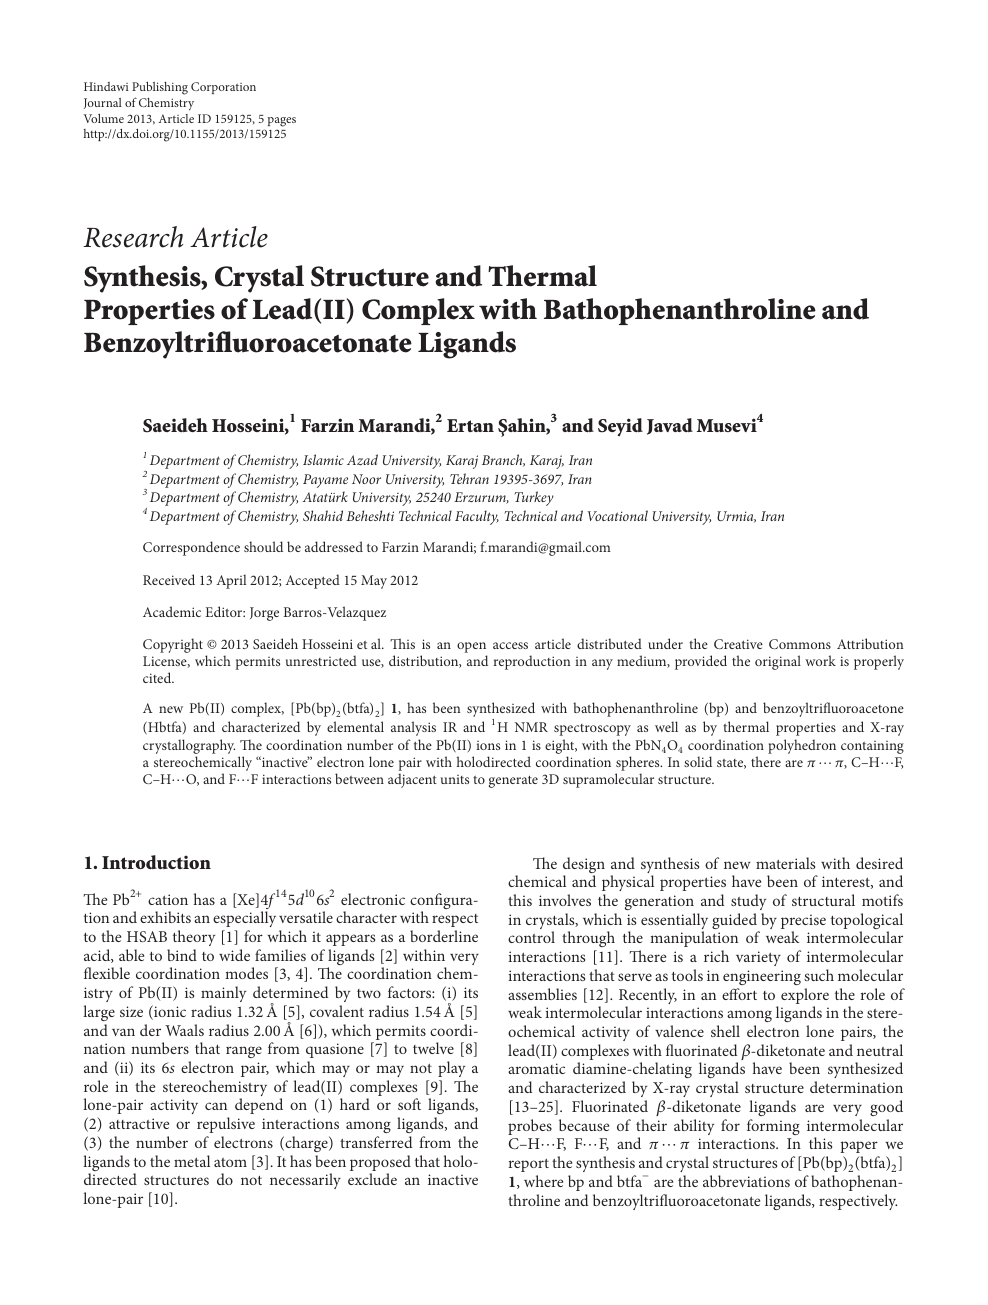 Synthesis Crystal Structure And Thermal Properties Of Lead Ii Complex With Bathophenanthroline And Benzoyltrifluoroacetonate Ligands Topic Of Research Paper In Chemical Sciences Download Scholarly Article Pdf And Read For Free On Cyberleninka